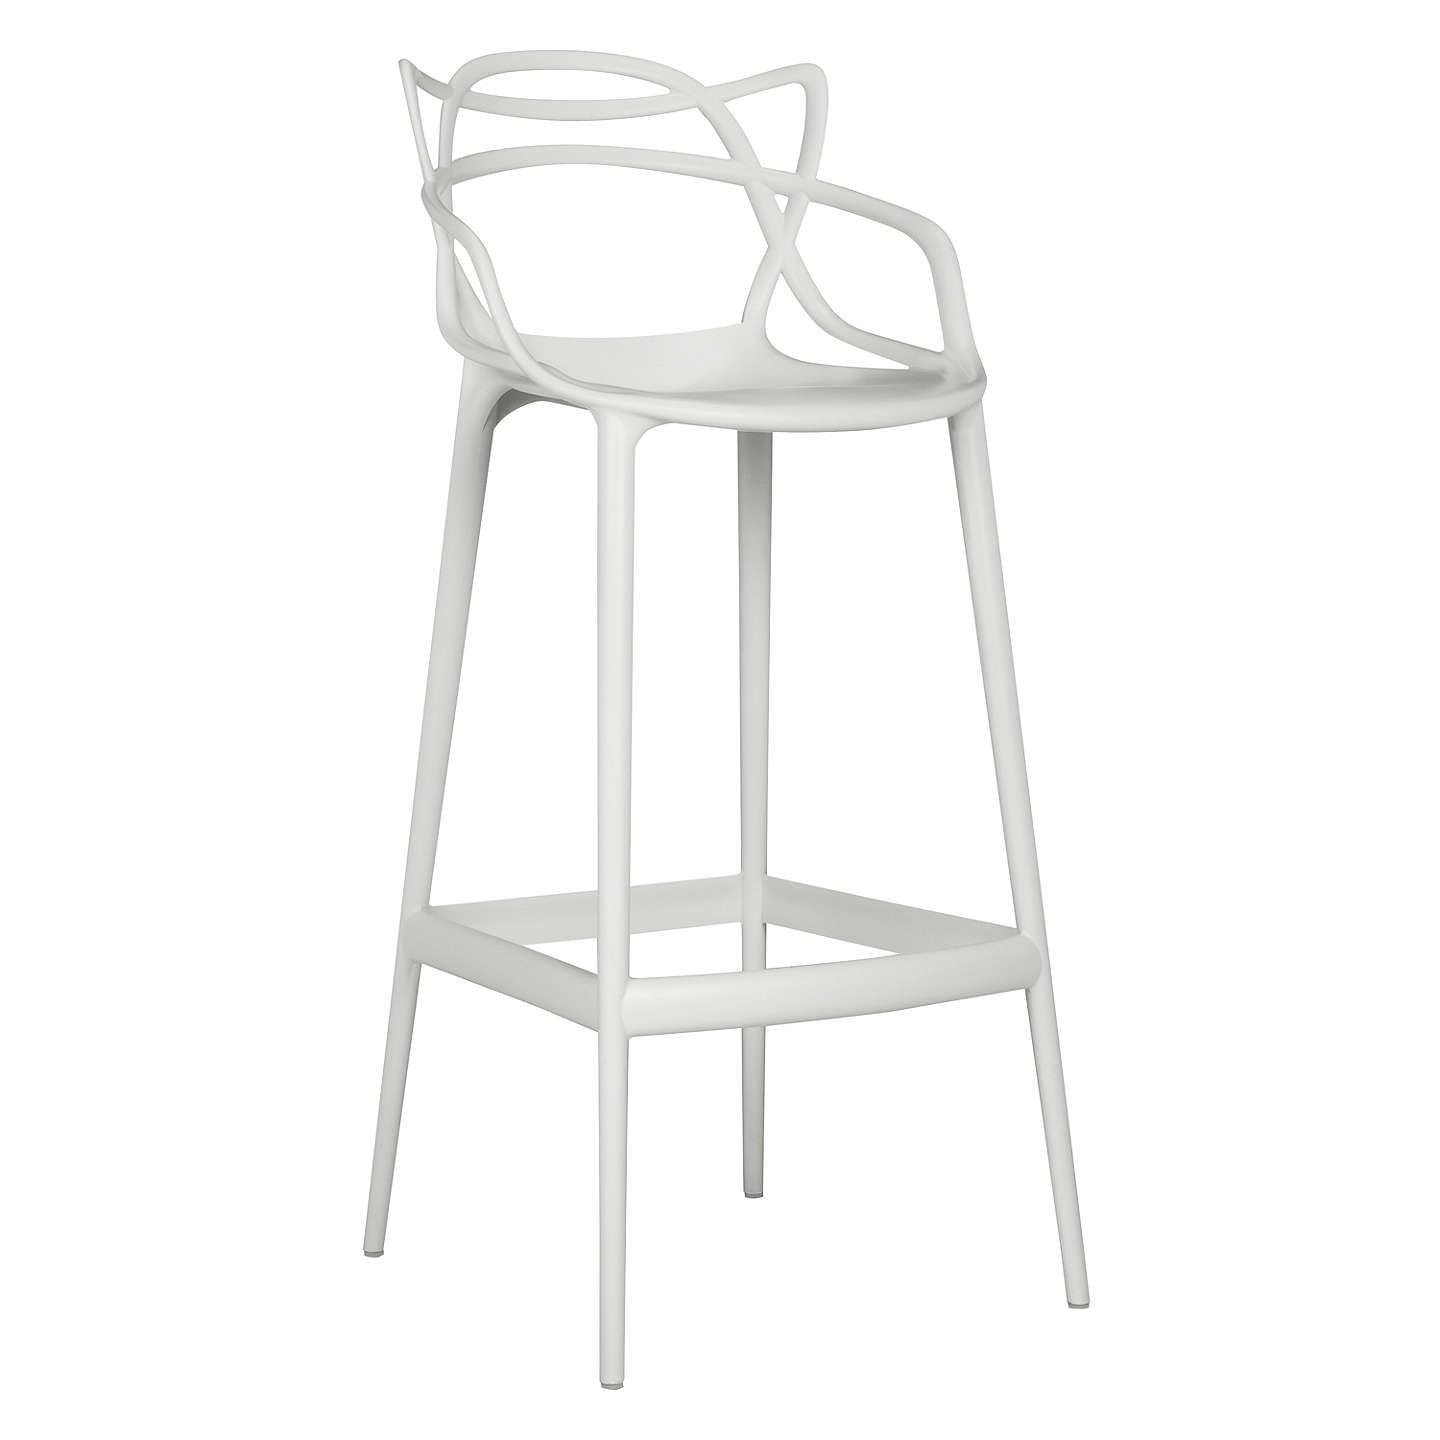 philippe starck for kartell masters bar chair at john lewis. Black Bedroom Furniture Sets. Home Design Ideas